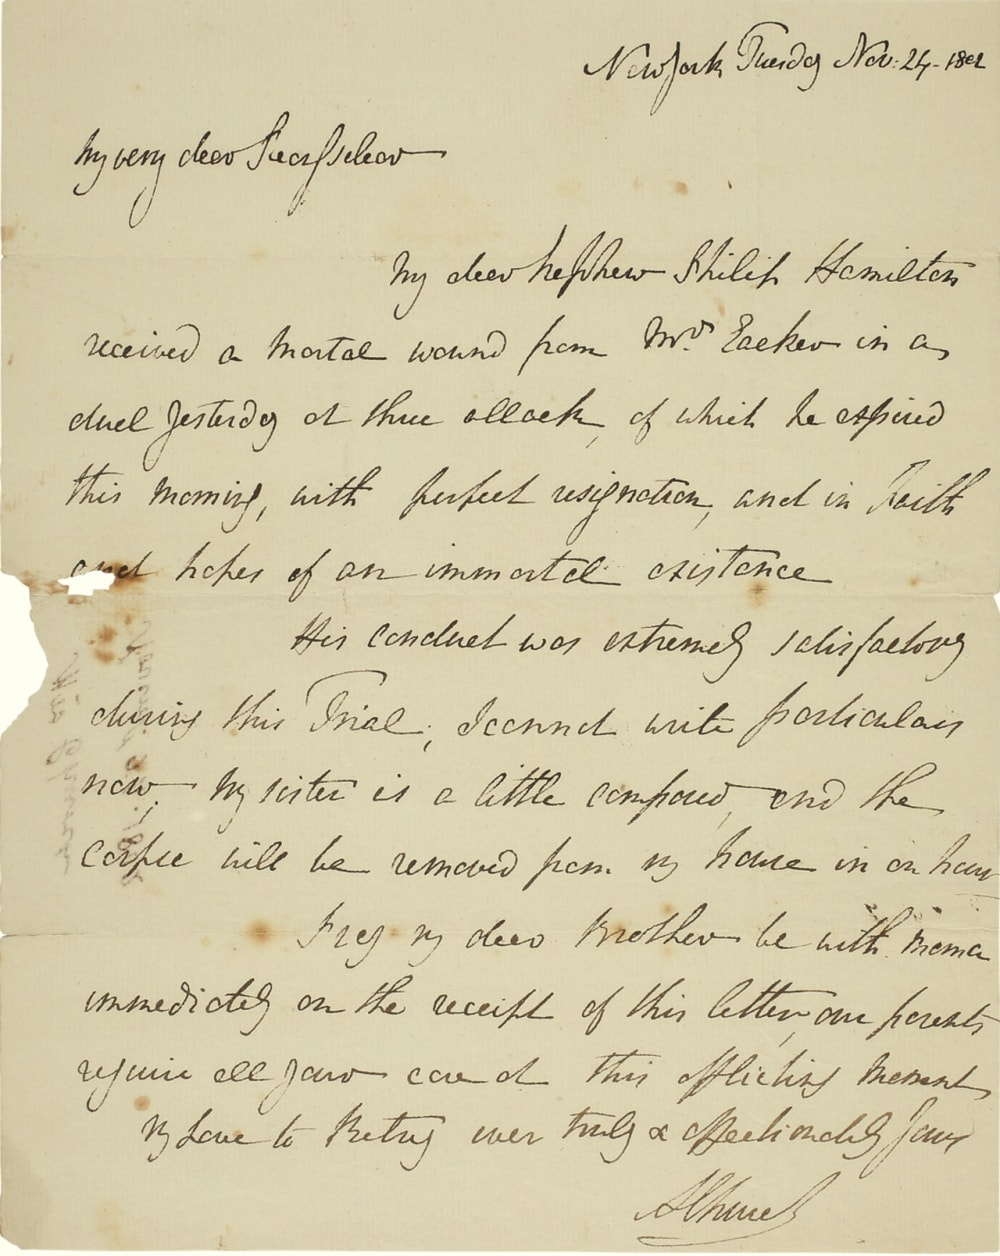 9. LETTER FROM ANGELICA SCHUYLER CHURCH REPORTING THE DEATH OF PHILIP HAMILTON // LOT 1061